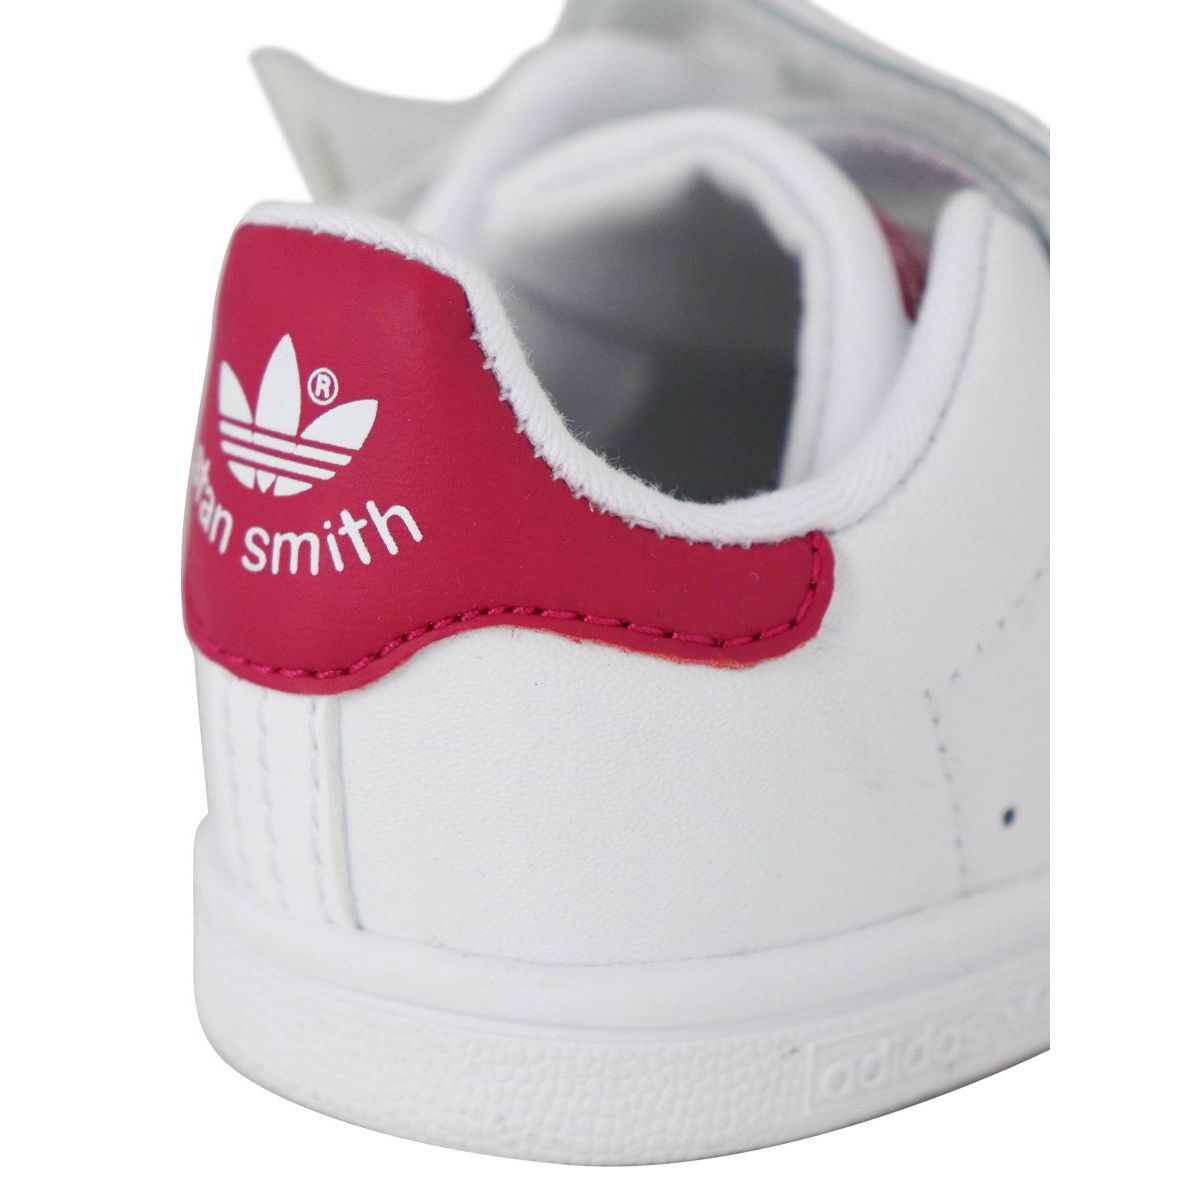 Baskets BZ0523 STAN SMITH Blanc / fuchsia Adidas